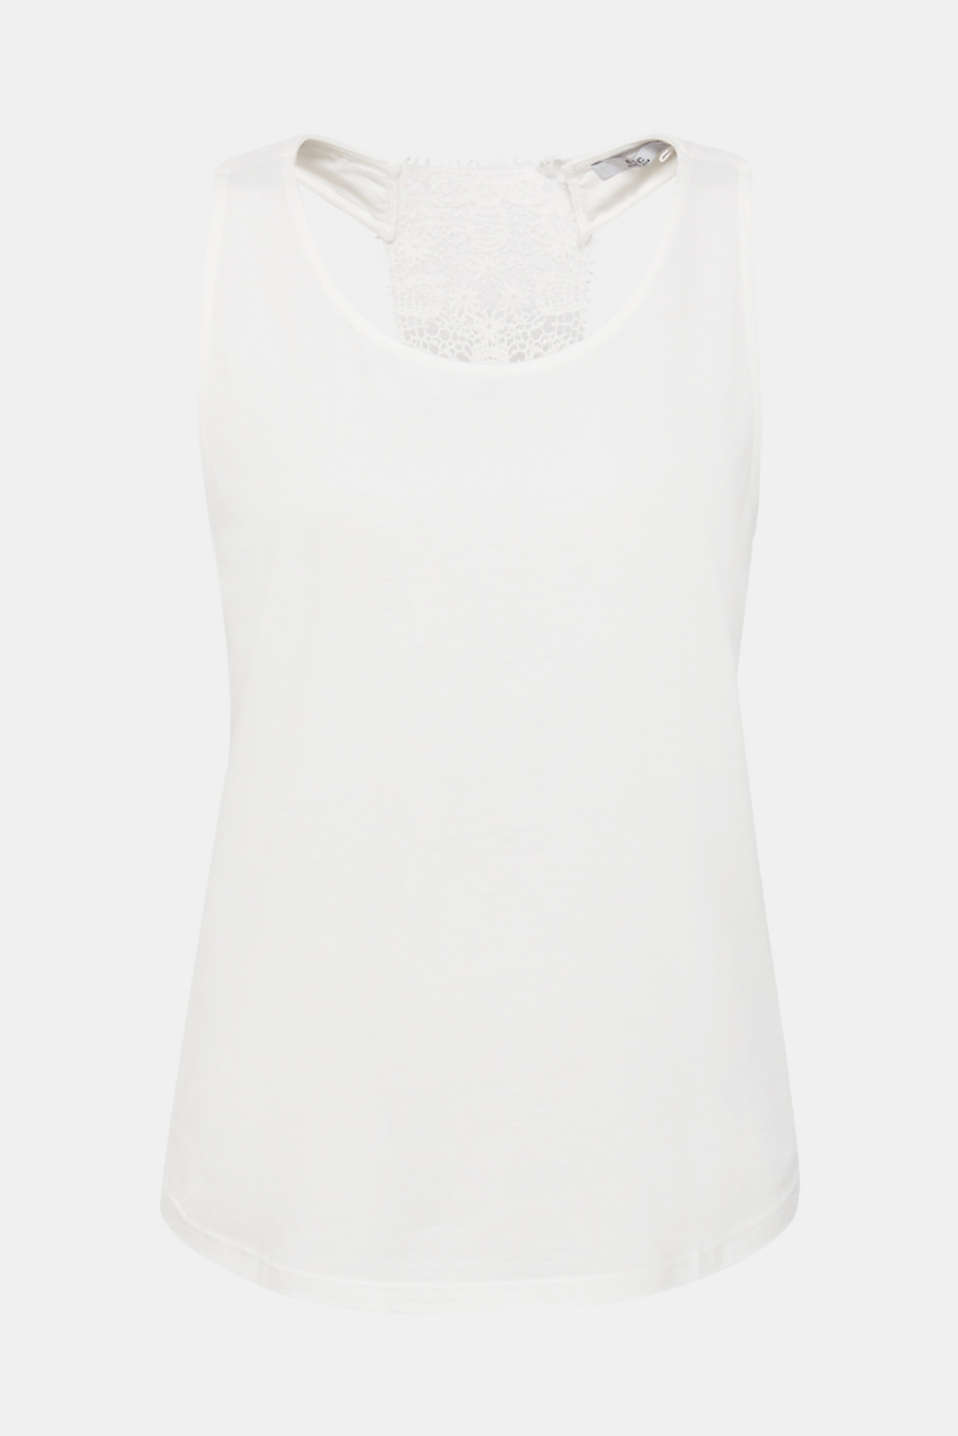 Jersey top with a racer back in crocheted lace, OFF WHITE, detail image number 7